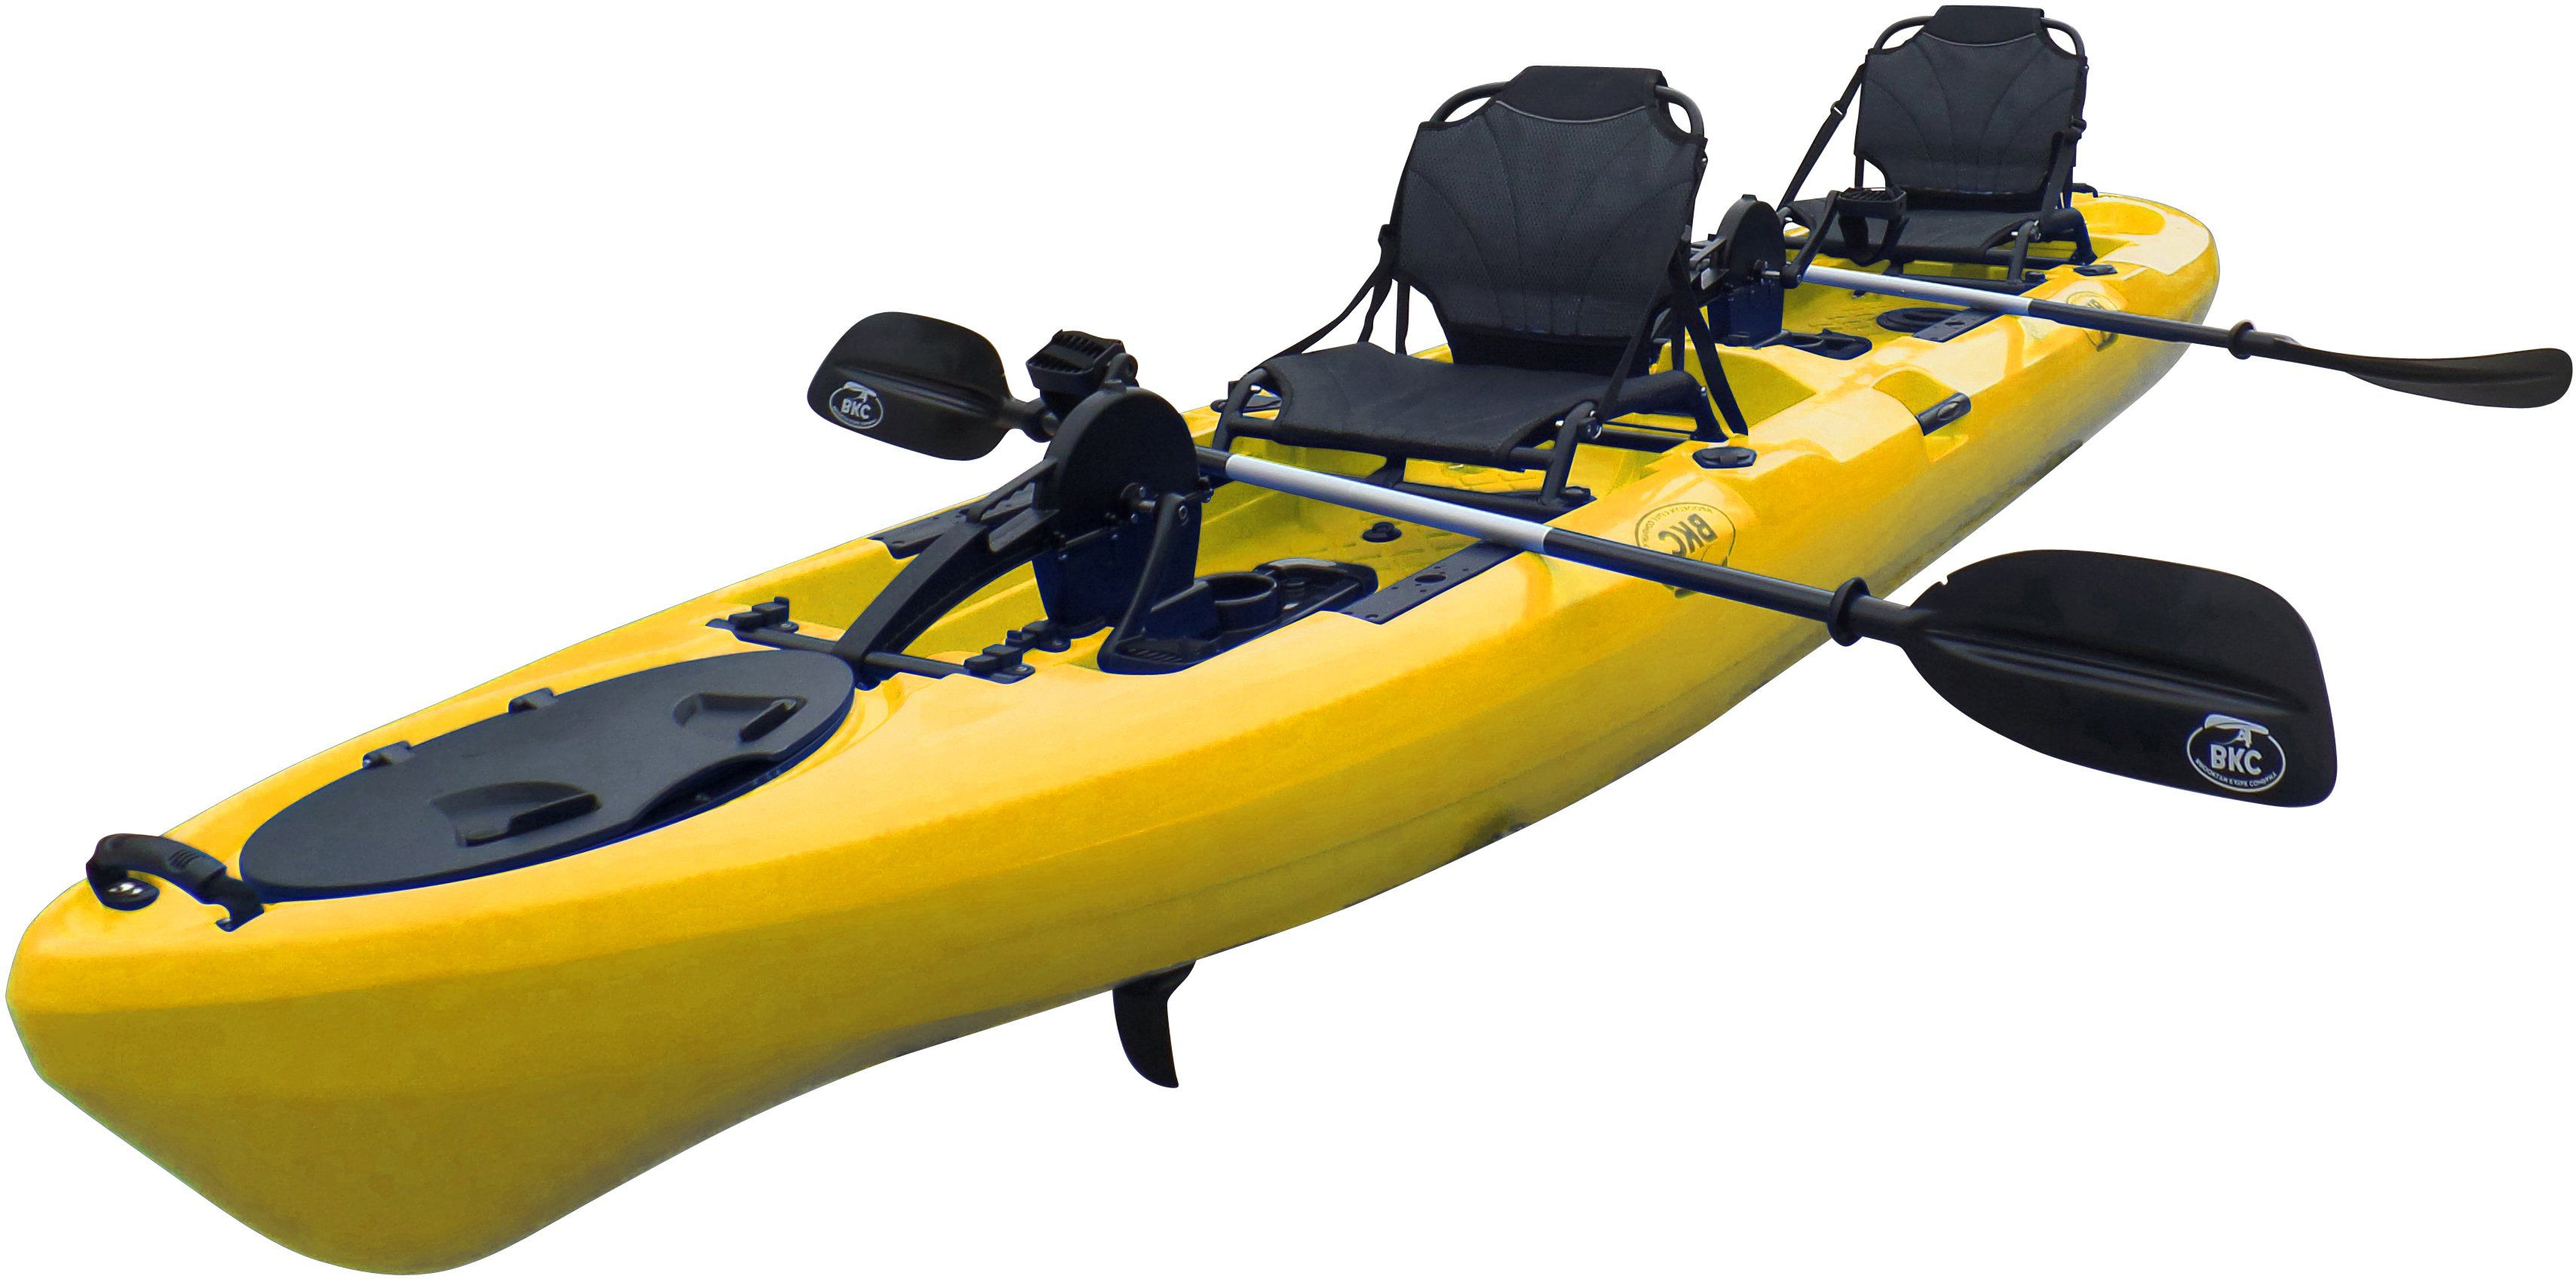 Bkc Pk14 14 Tandem Sit On Top Pedal Drive Kayak W Rudder System